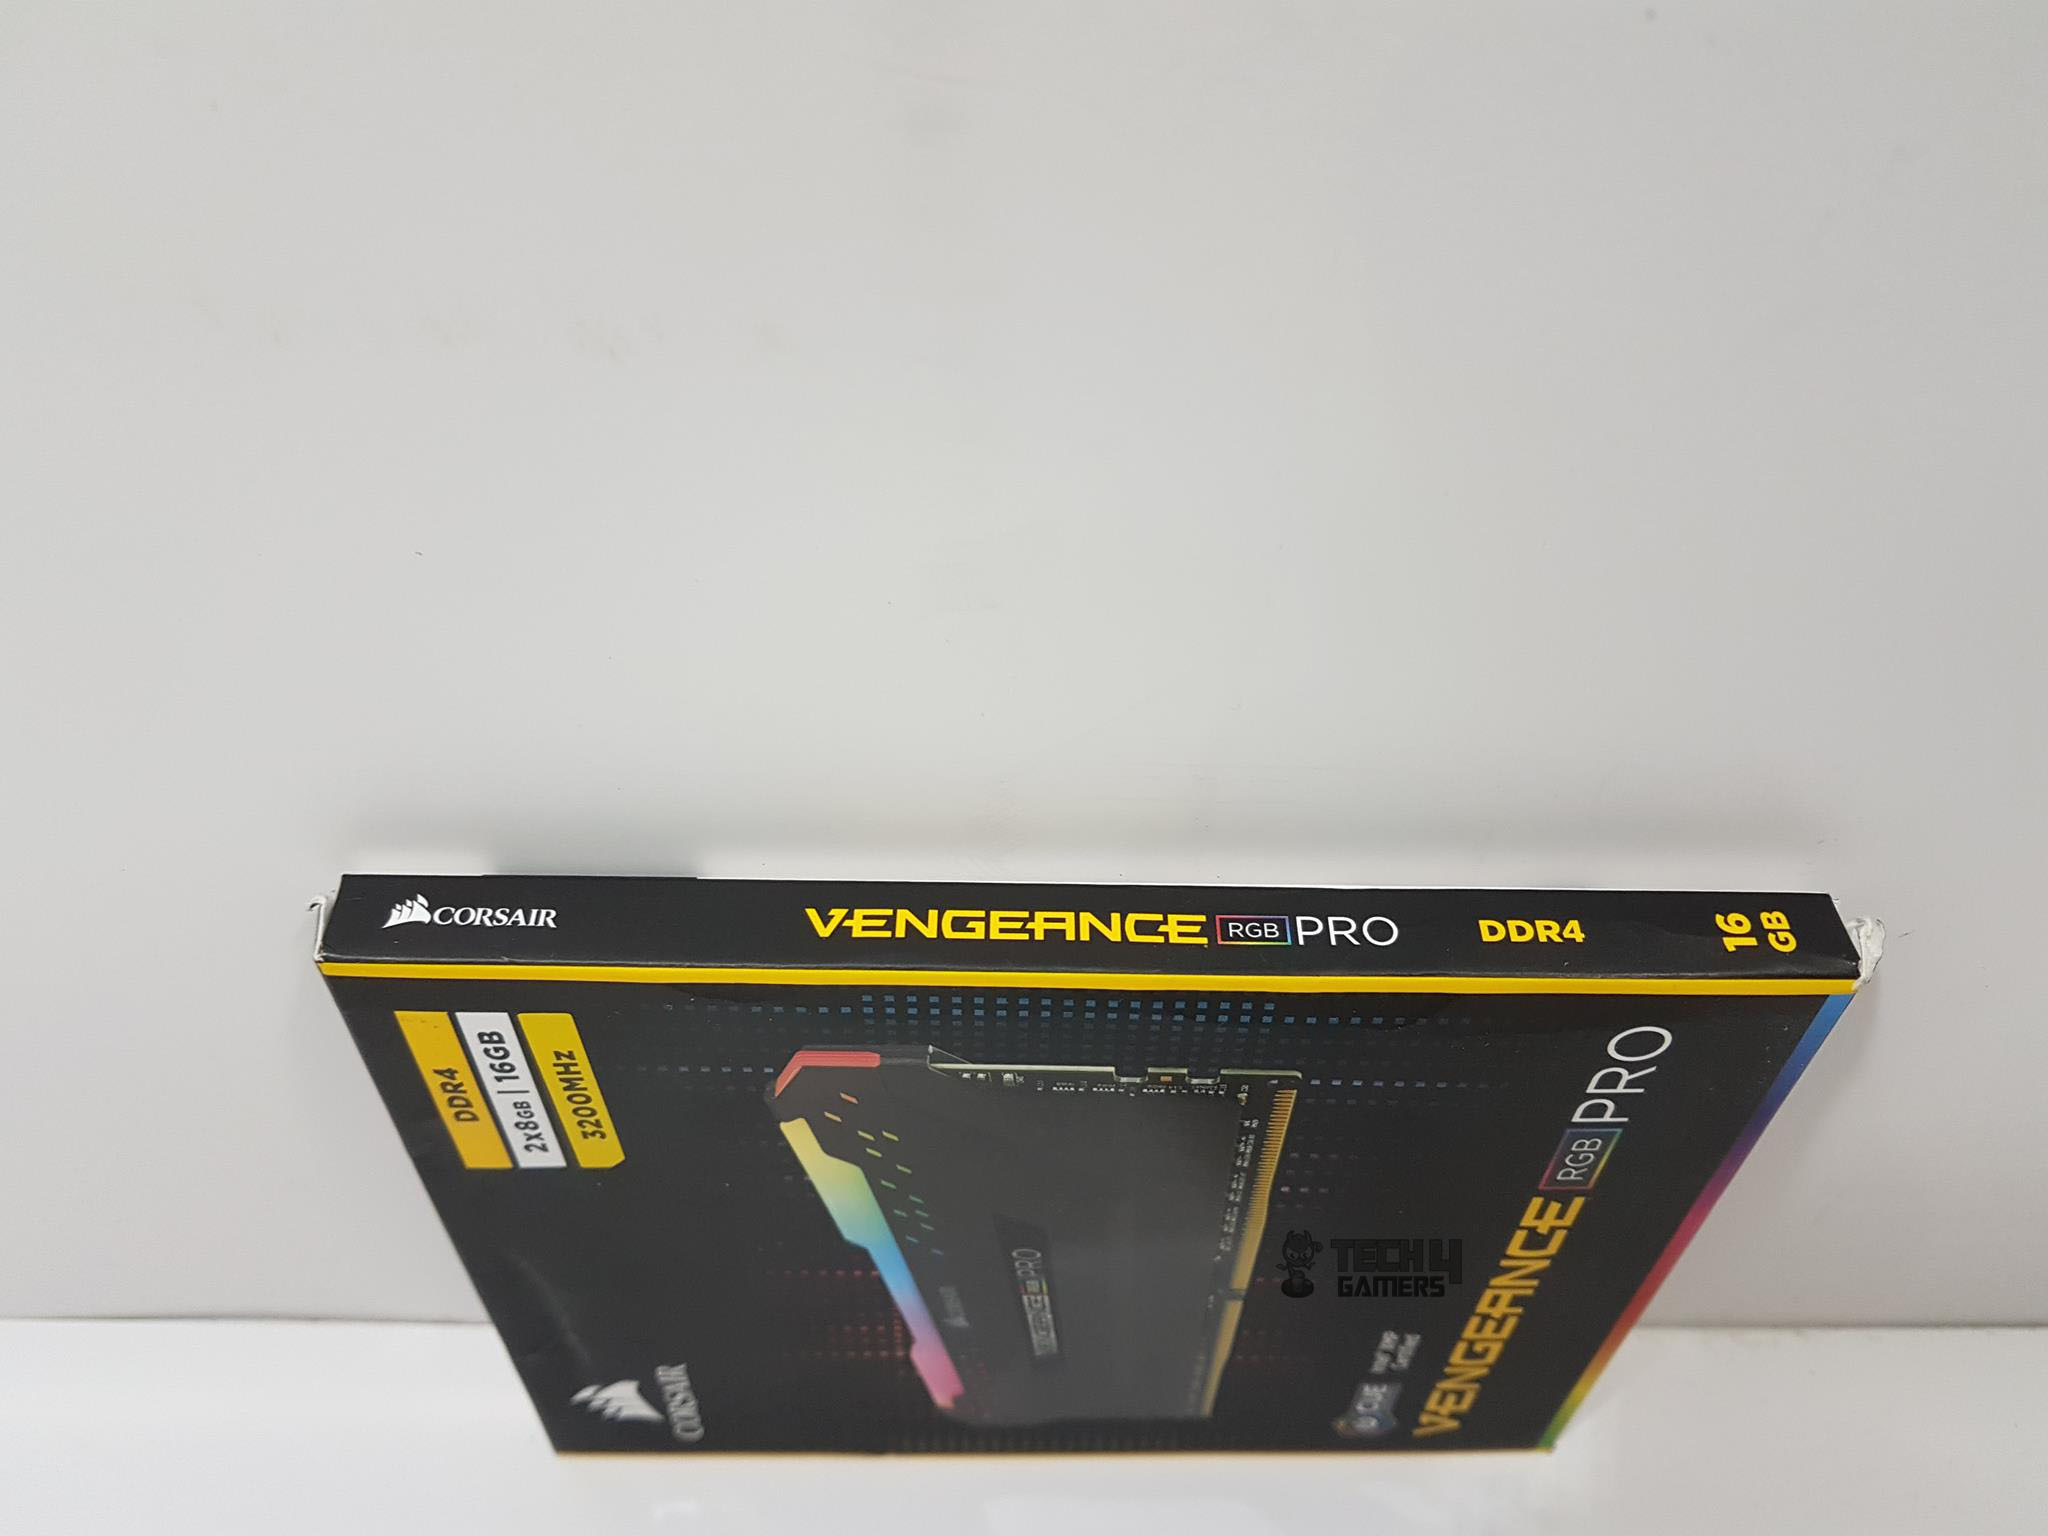 Corsair Vengeance RGB Pro 16GB @ 3200MHz Kit Review